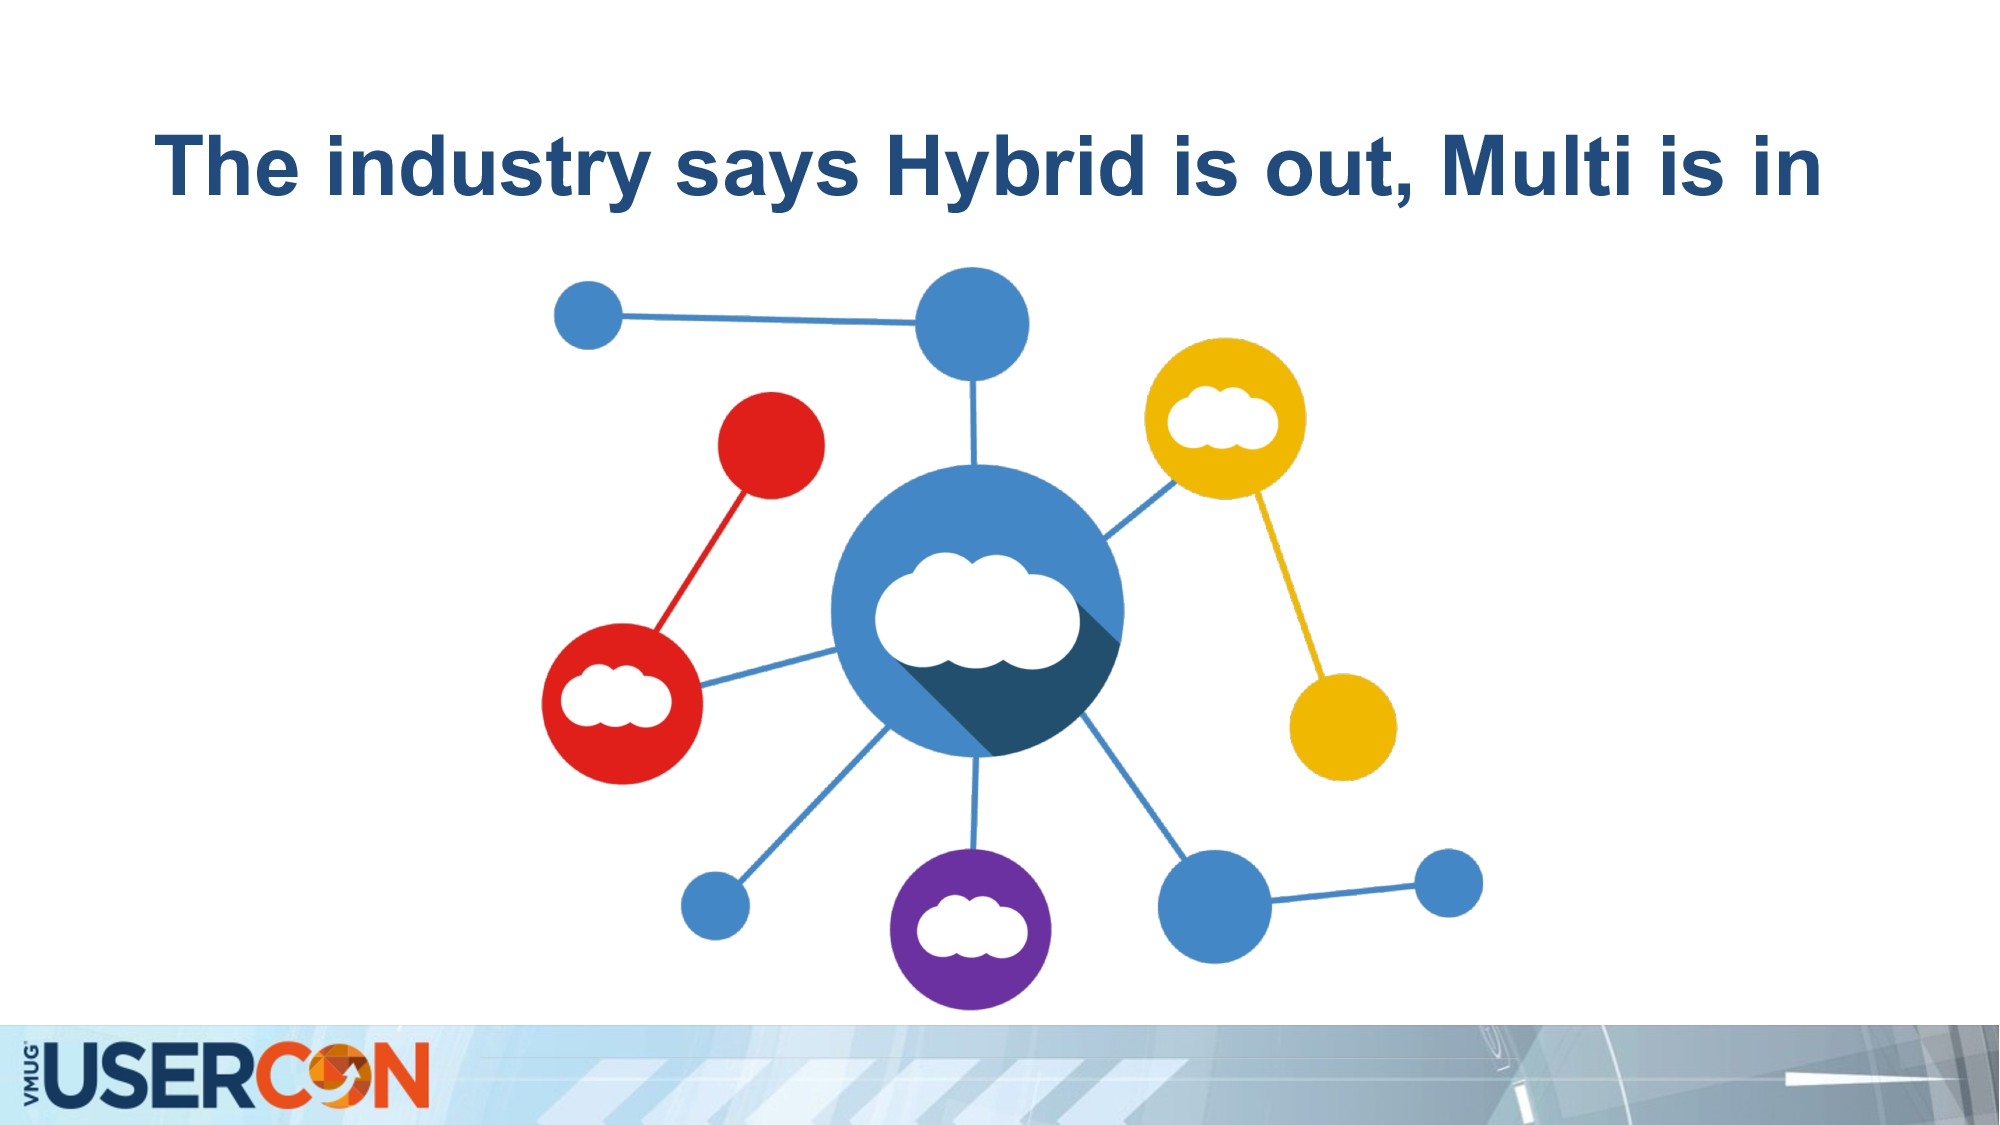 The industry says Hybrid is out, Multi is in